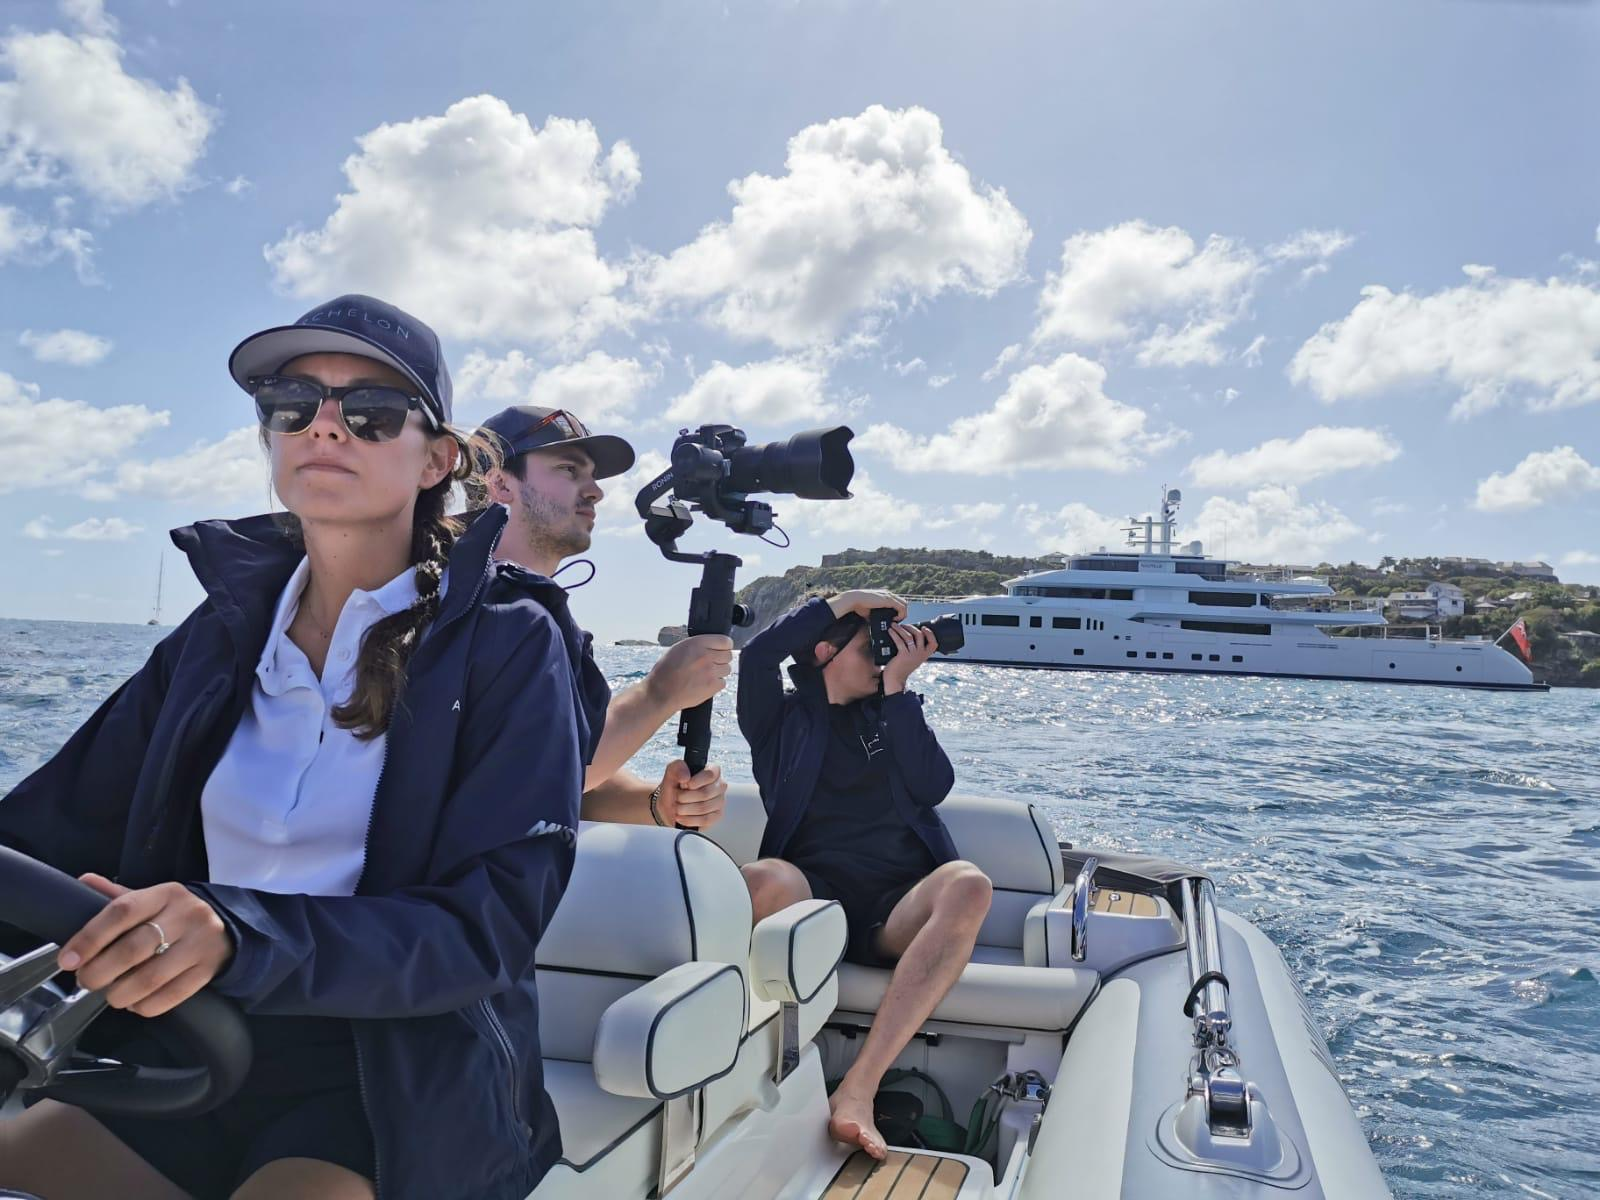 Behind the scenes on our S/Y Archelon shoot